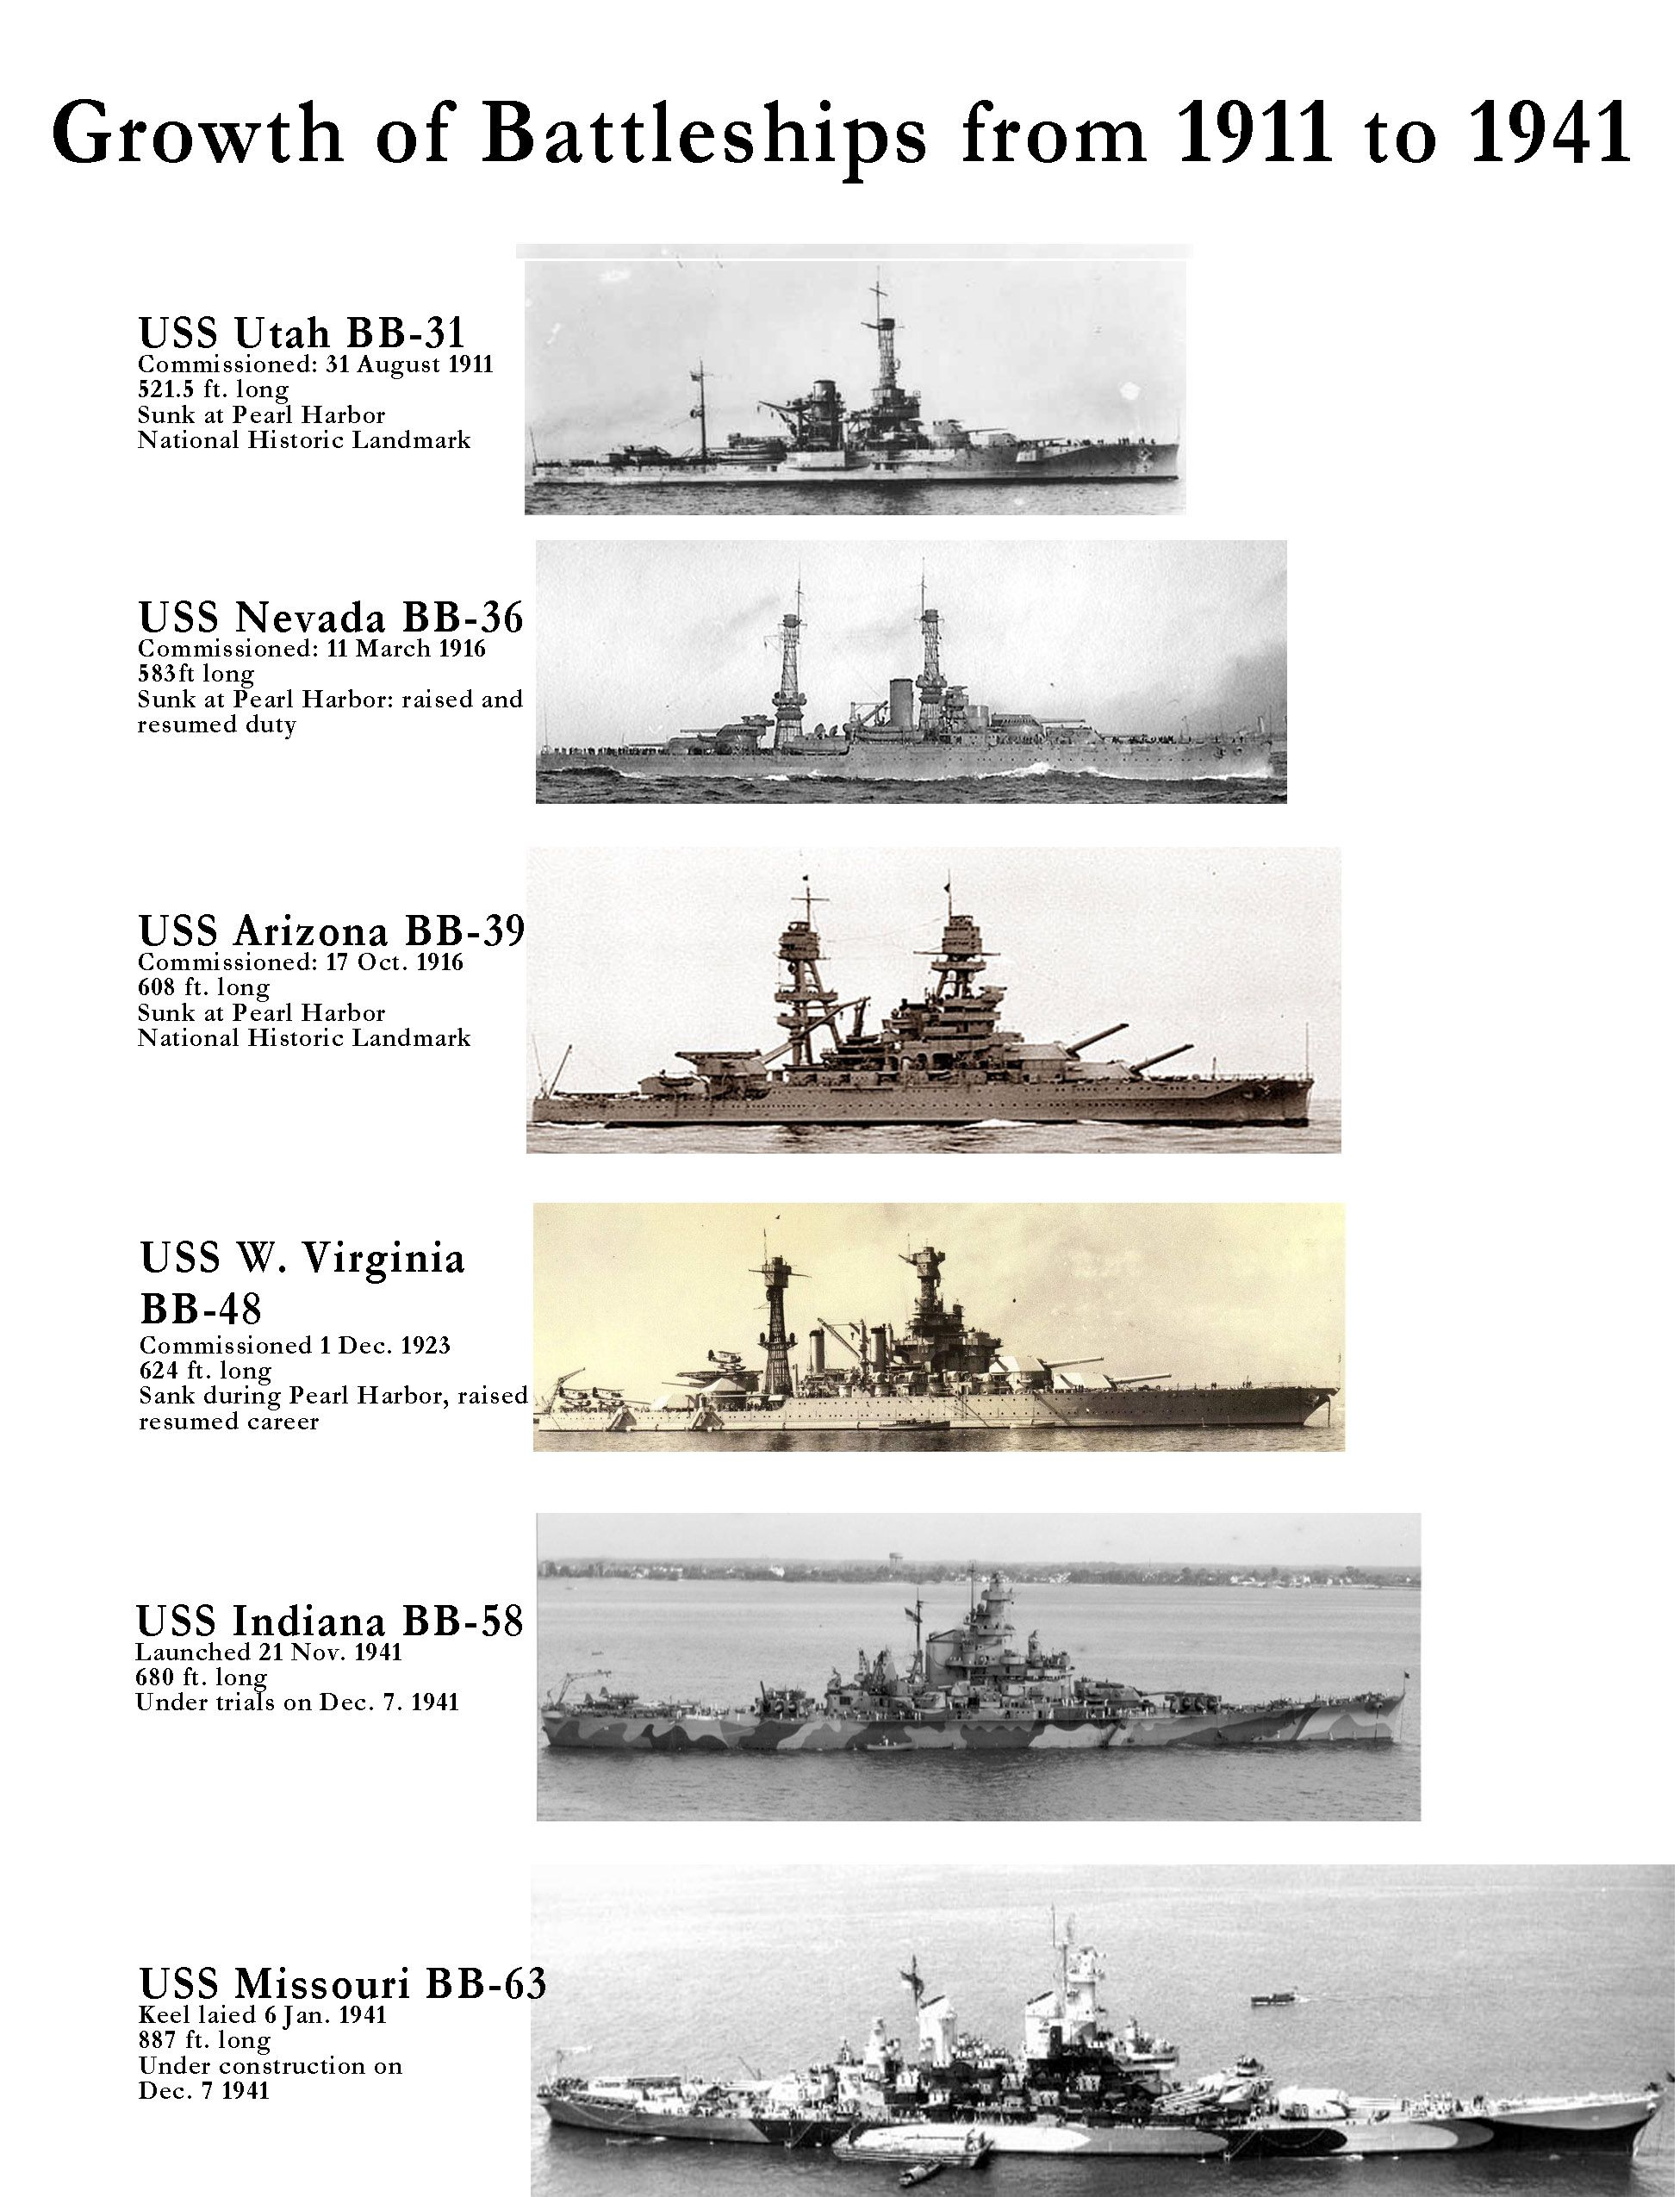 Growth of US battleships from 1911 to 1944, | United States Navy ...